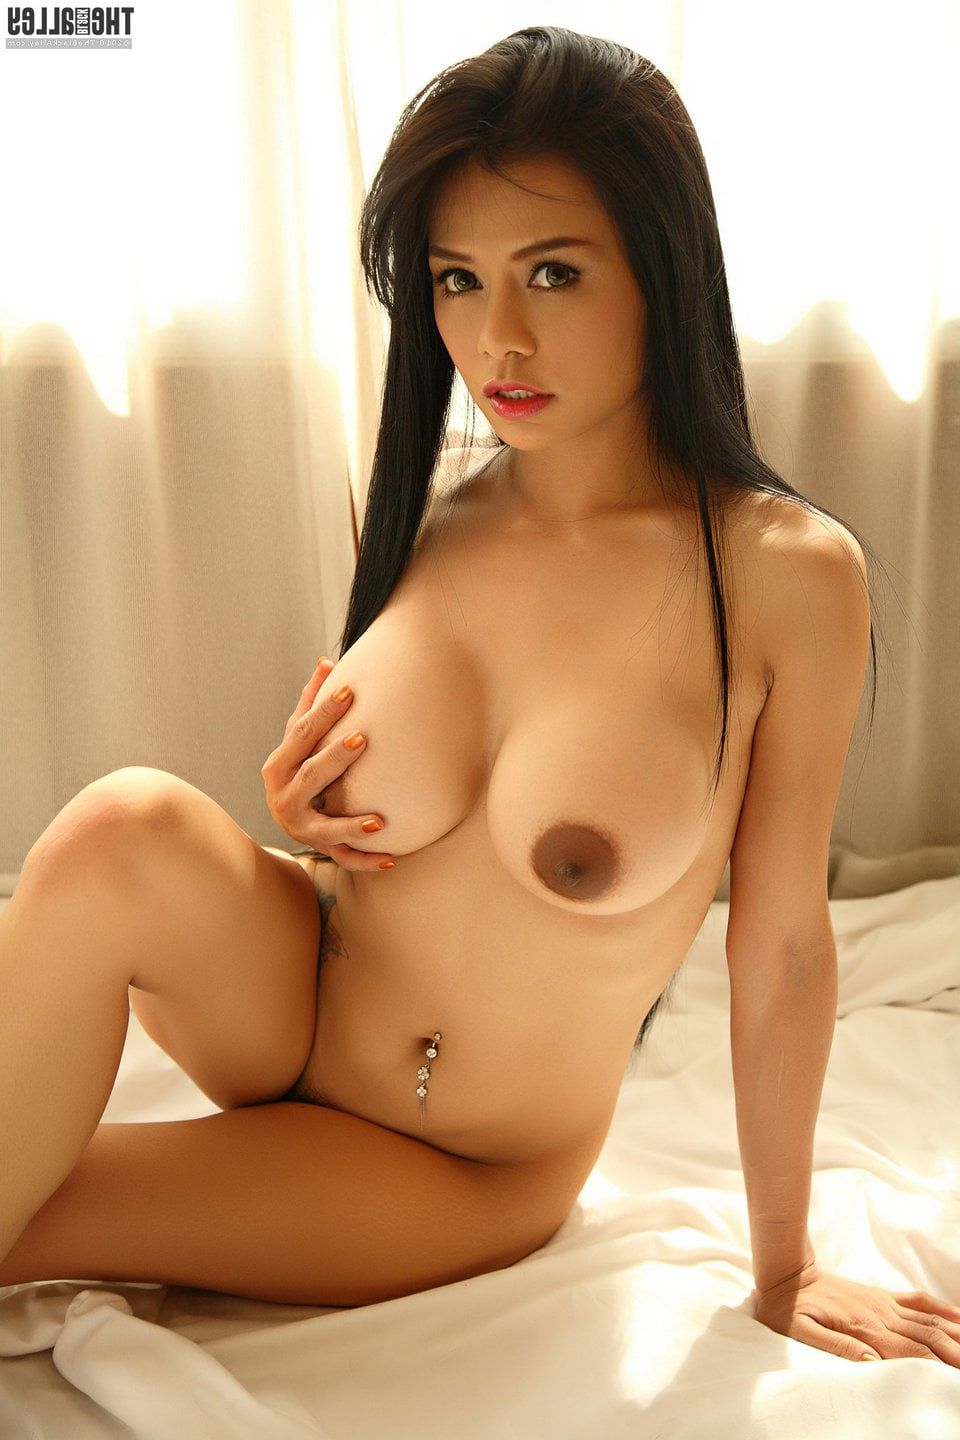 Asian girls naked Prittiest